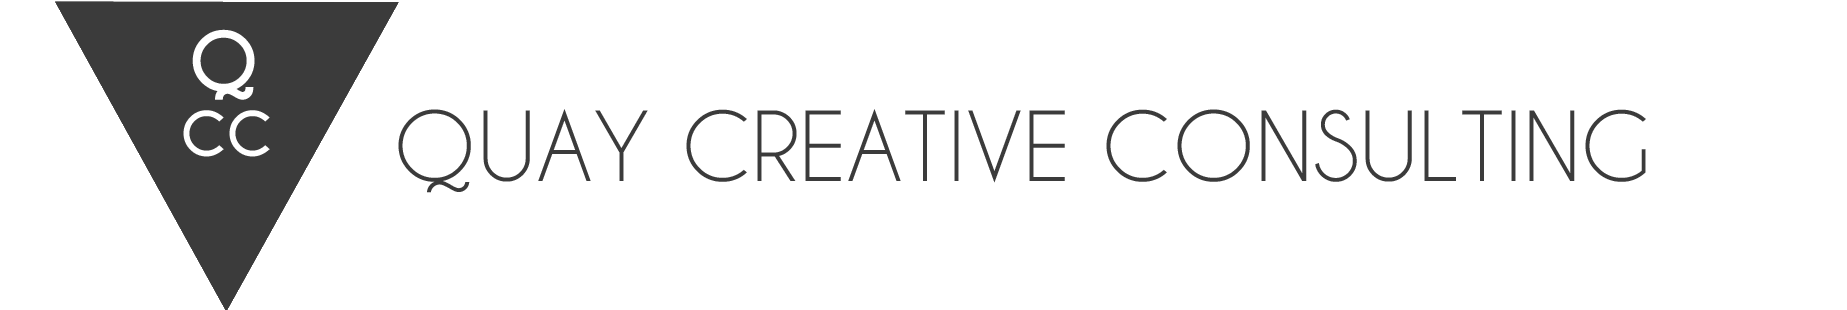 Quay Creative Consulting